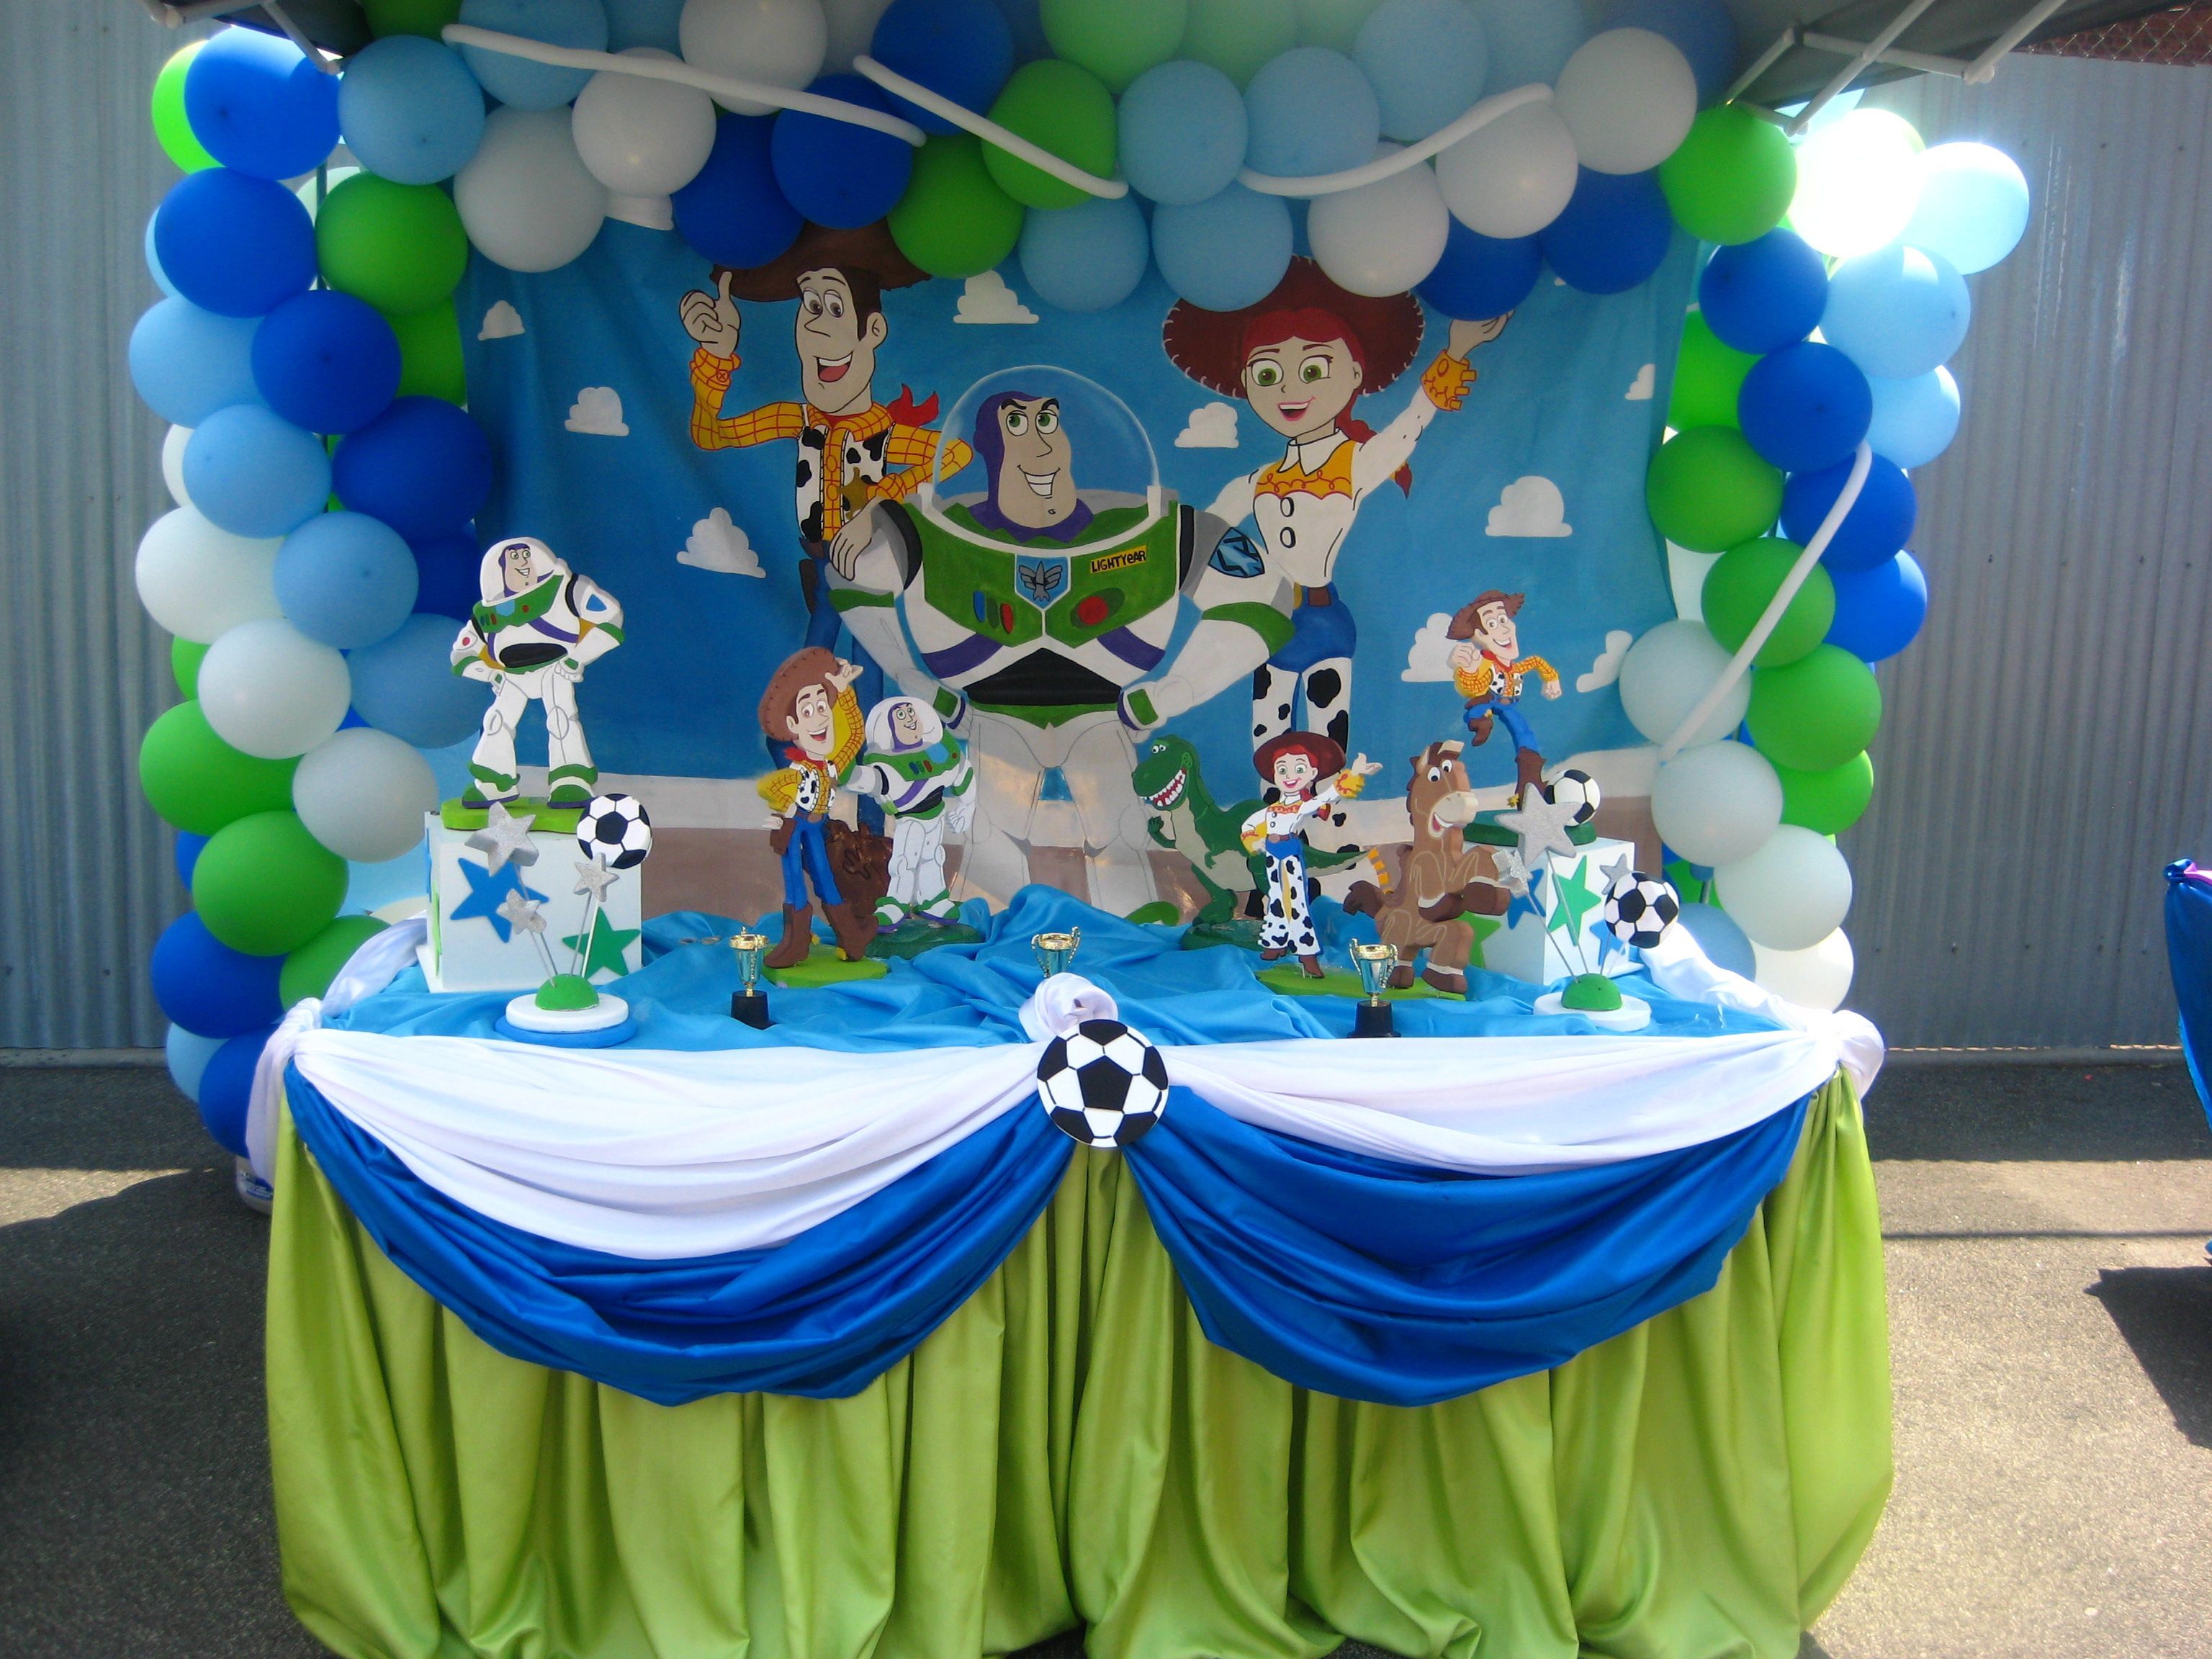 Toy Story Baby Shower Decorations  from i.pinimg.com